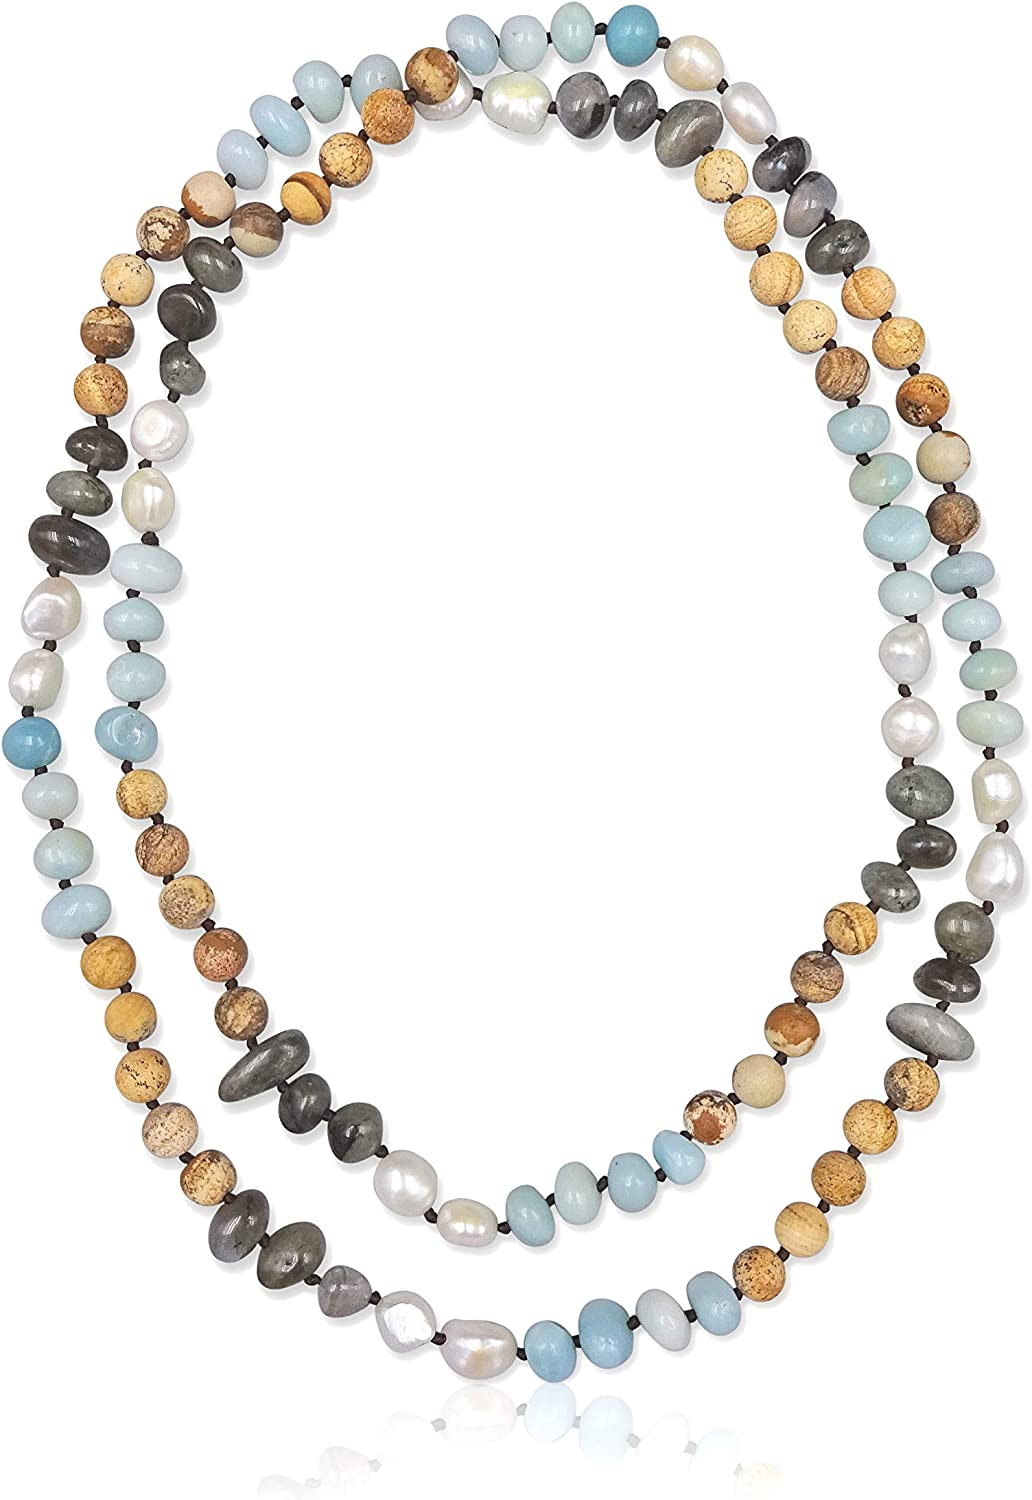 42 Long. Endless Infinity Mixed Semi-Precious Stone and Cultured Fresh Water Pearl Beaded Strand Statement Necklace MGR MY GEMS ROCK